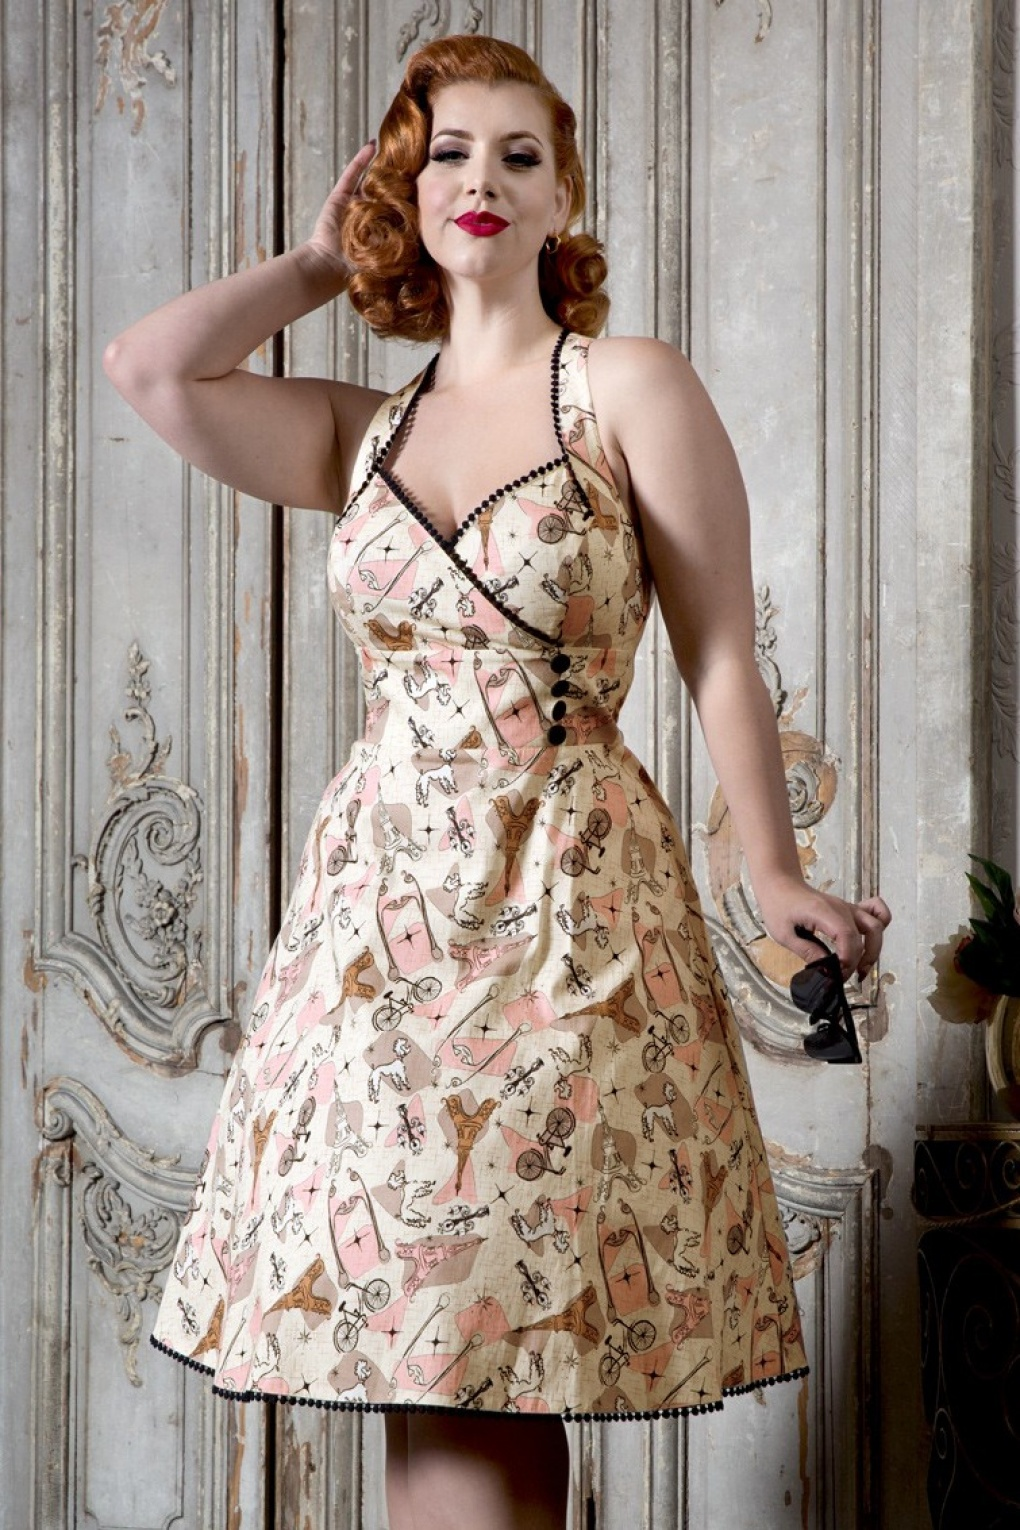 Retro Revolution Where To Find Vintage Clothing In: 50s Claudine Swing Dress In Cream